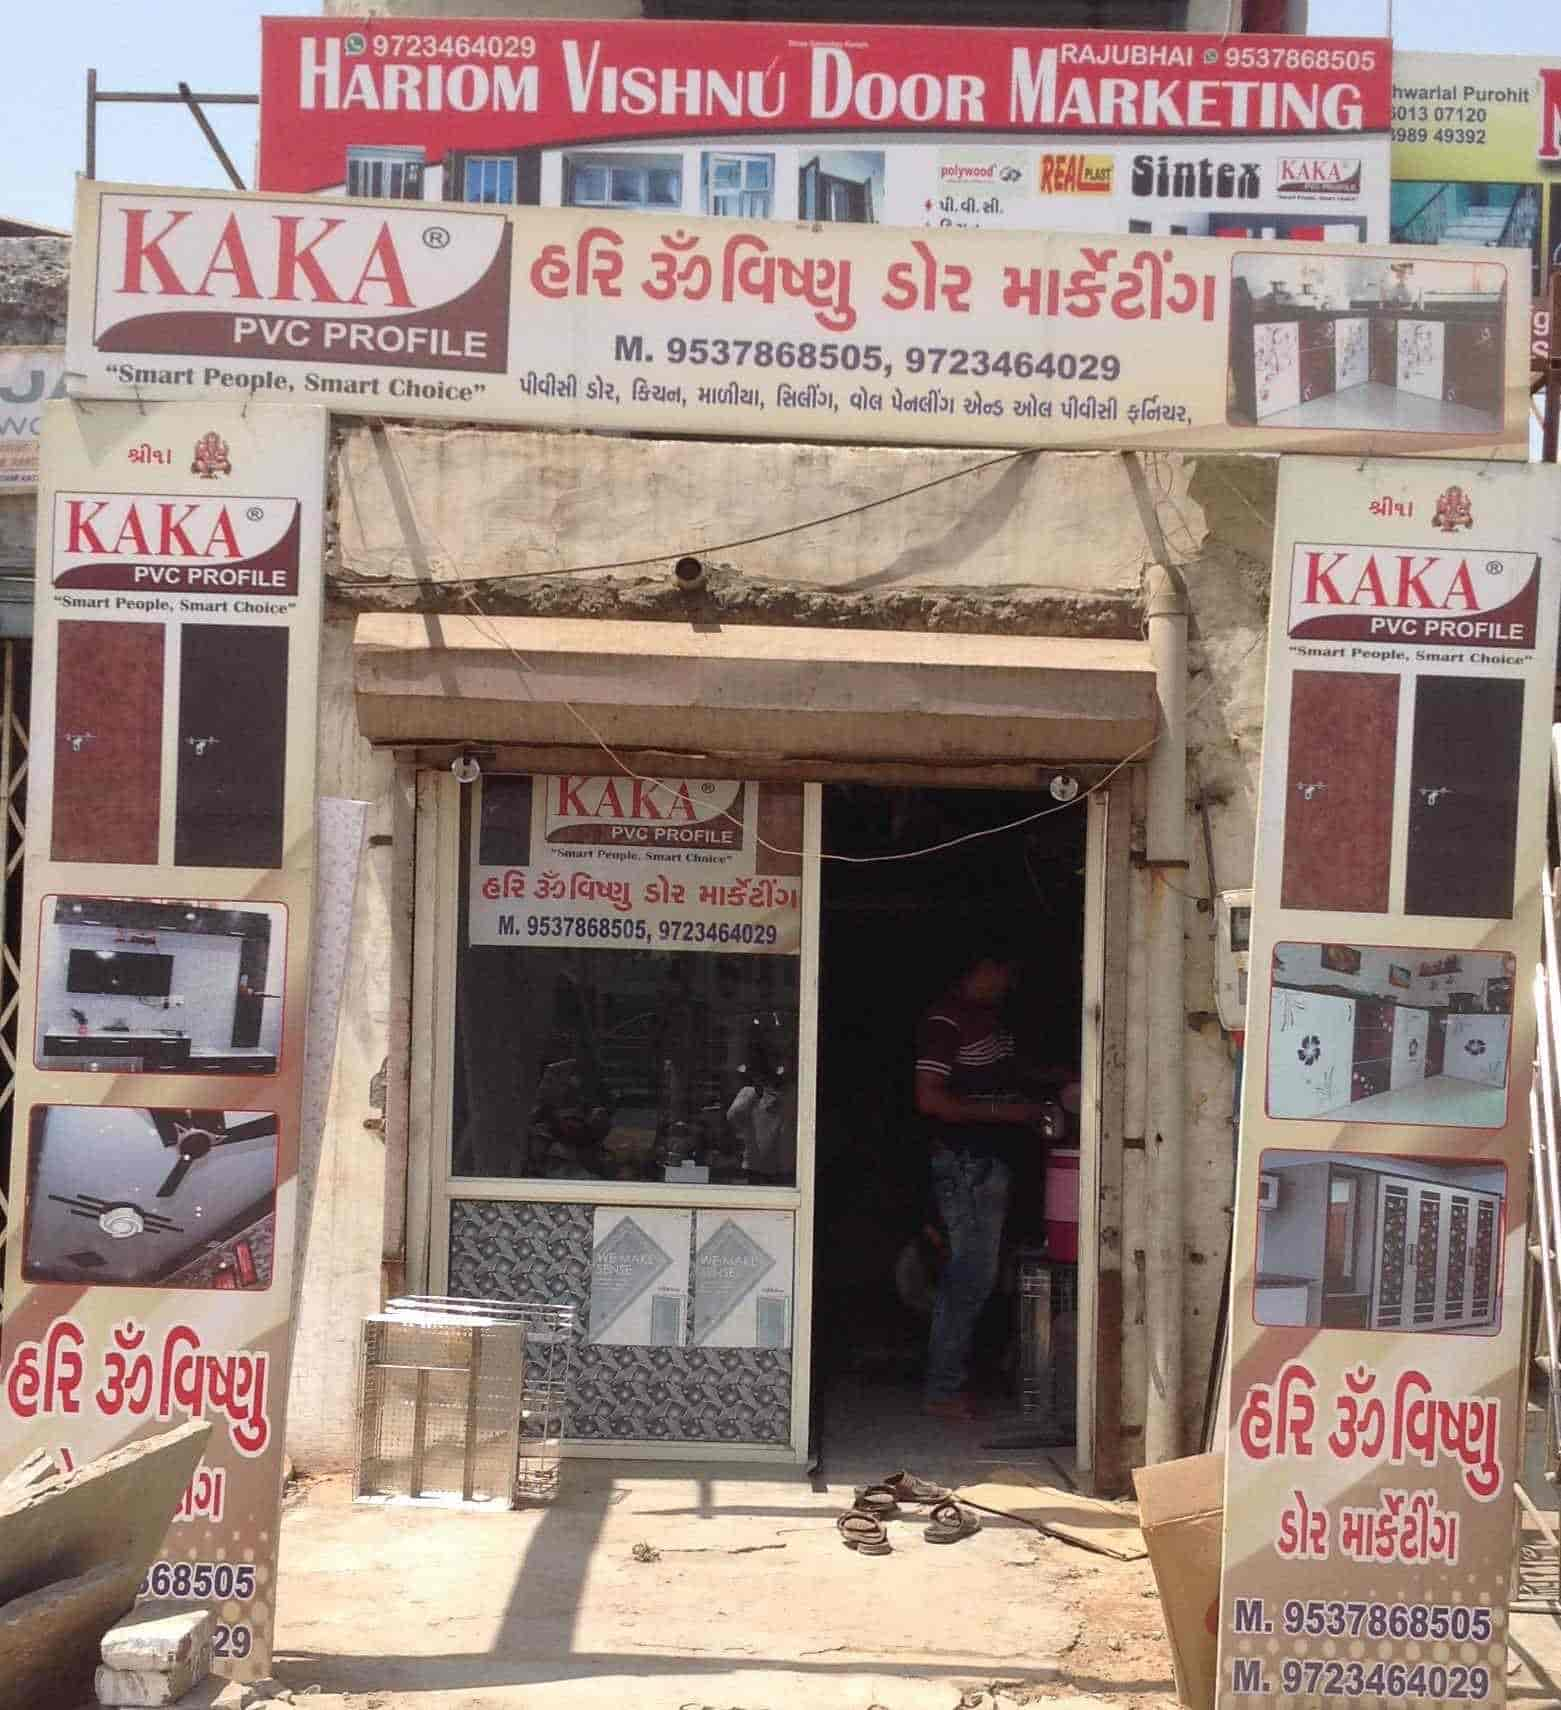 Hariom Vishnu Door Marketing Photos Jasodanagar Ahmedabad